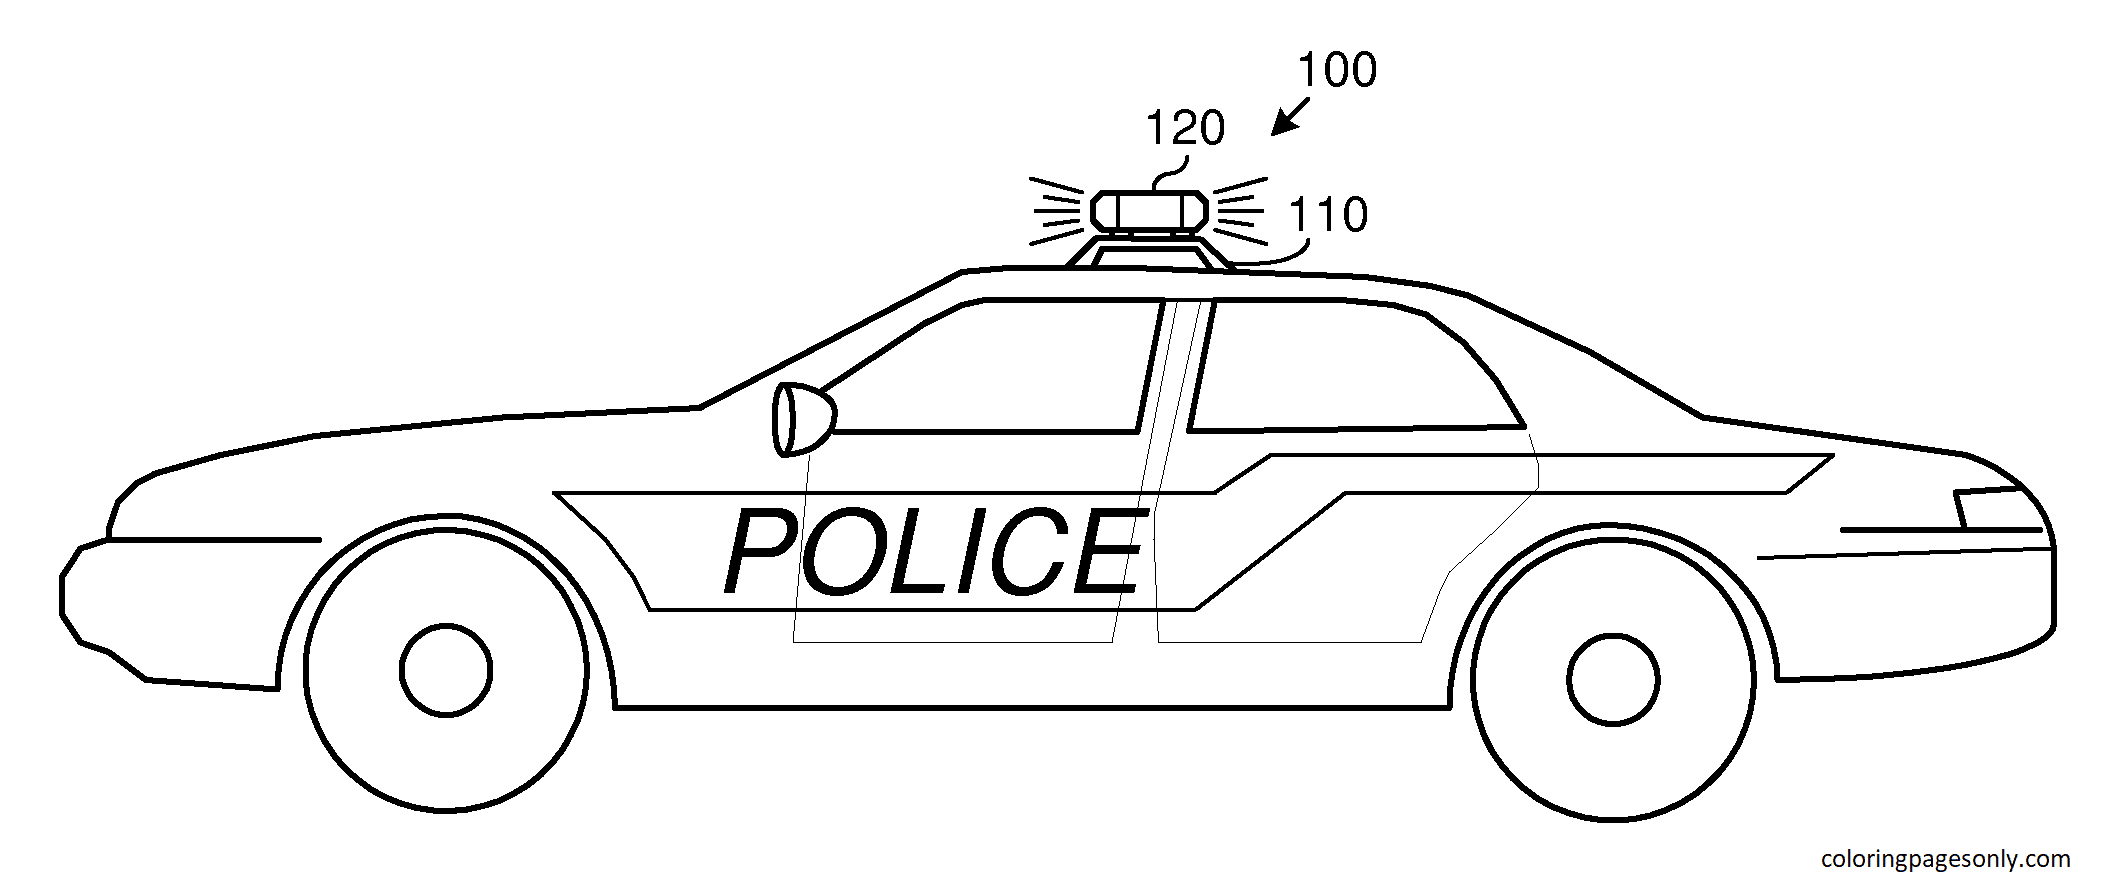 Police 1 Coloring Page